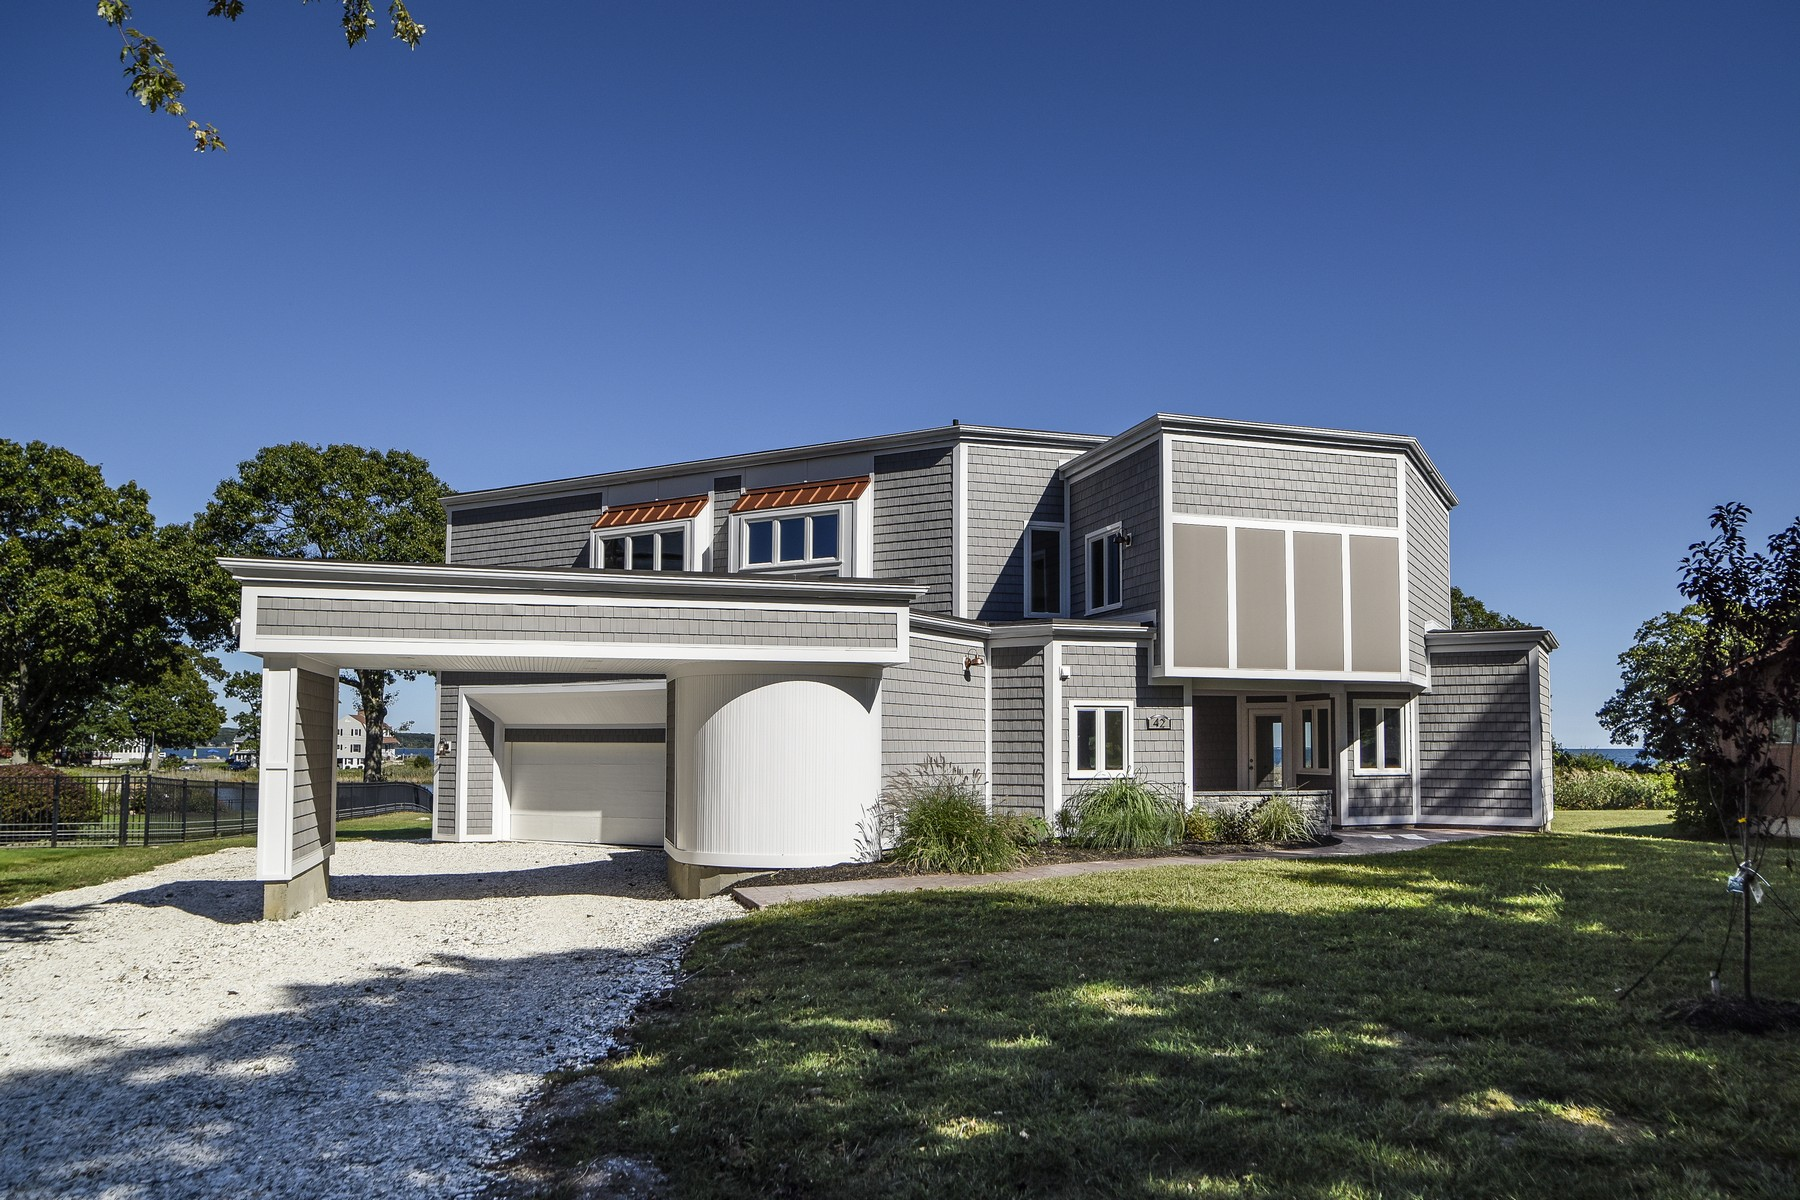 Single Family Home for Sale at Breathtaking Views Of Long Island Sound 42 Attawan Road East Lyme, Connecticut, 06357 United States